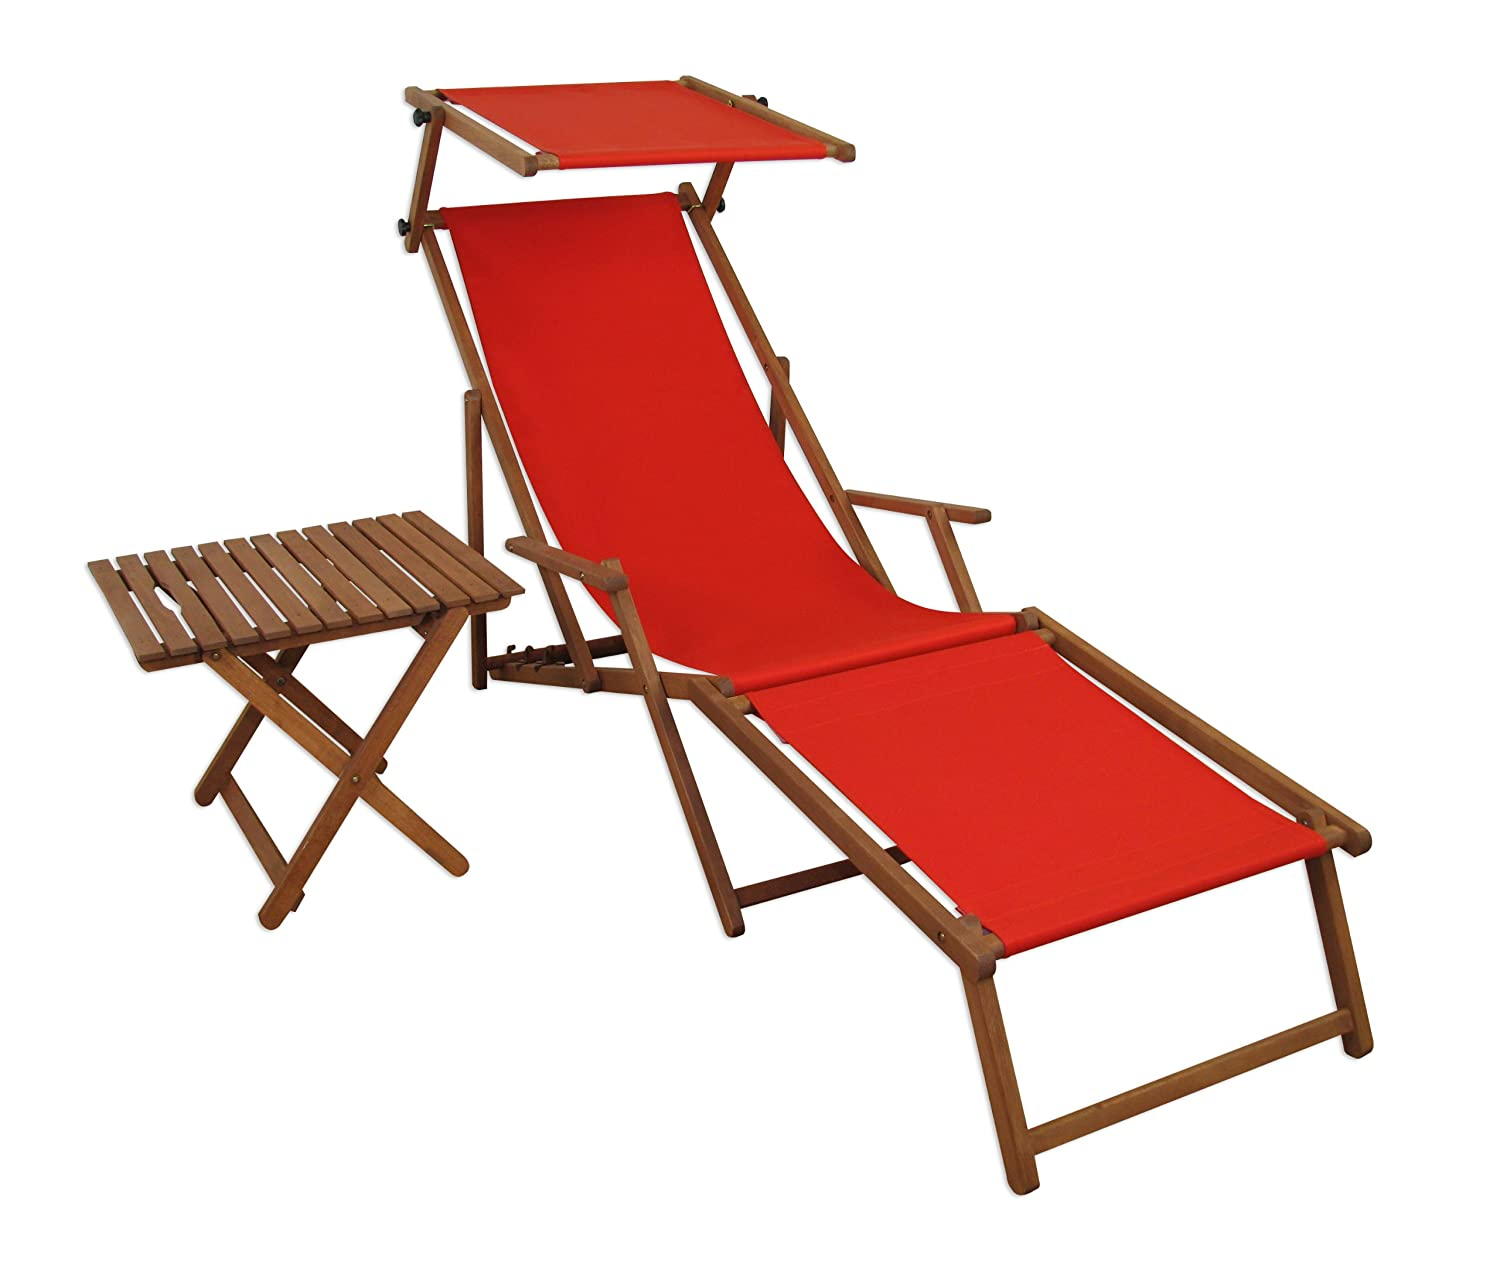 sonnenliege gartenliege deckchair saunaliege mit dach fu teil tisch bestellen. Black Bedroom Furniture Sets. Home Design Ideas